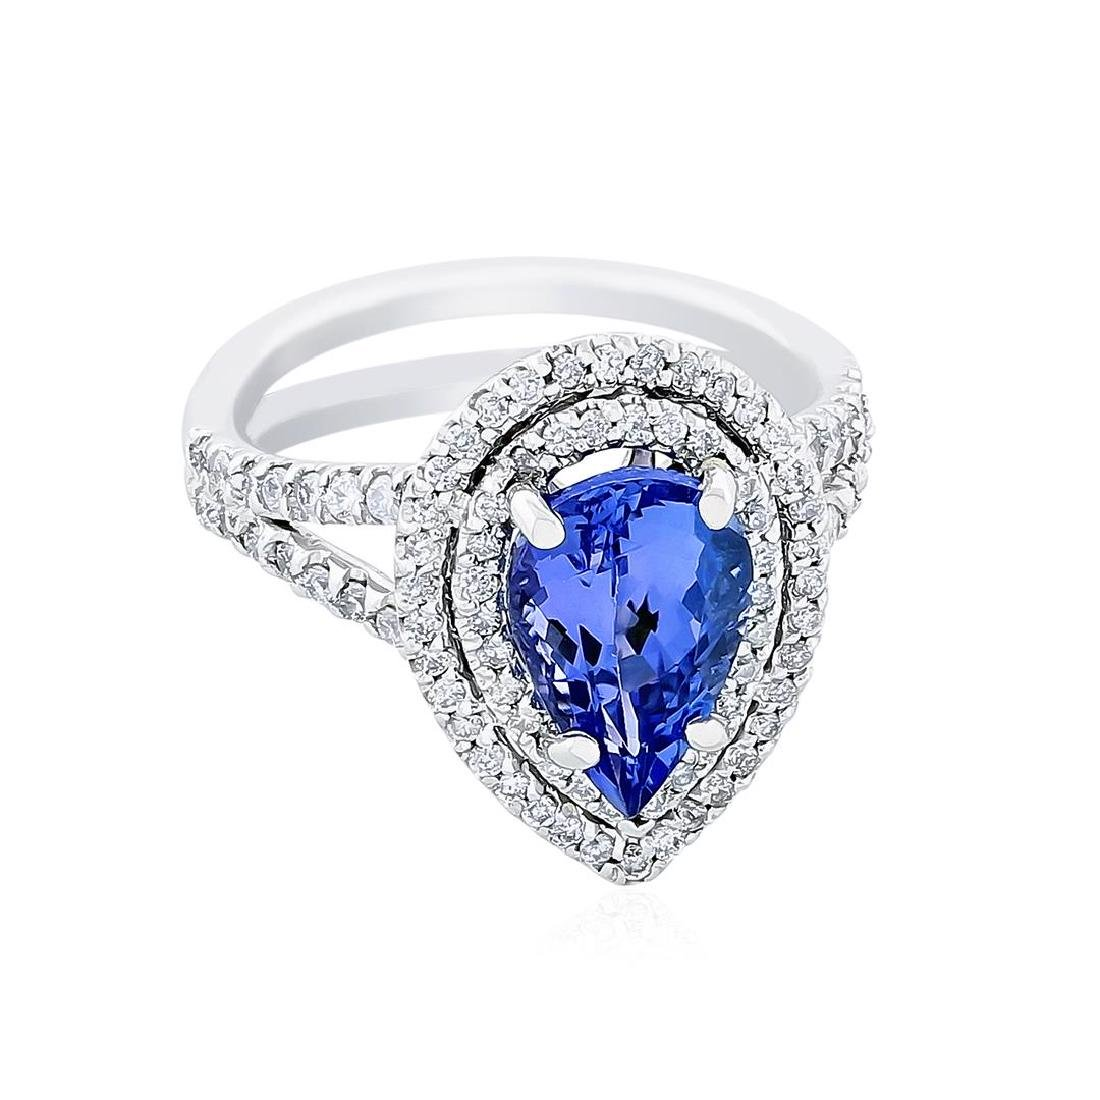 14KT White Gold 2.40 ctw Tanzanite and Diamond Ring - 2